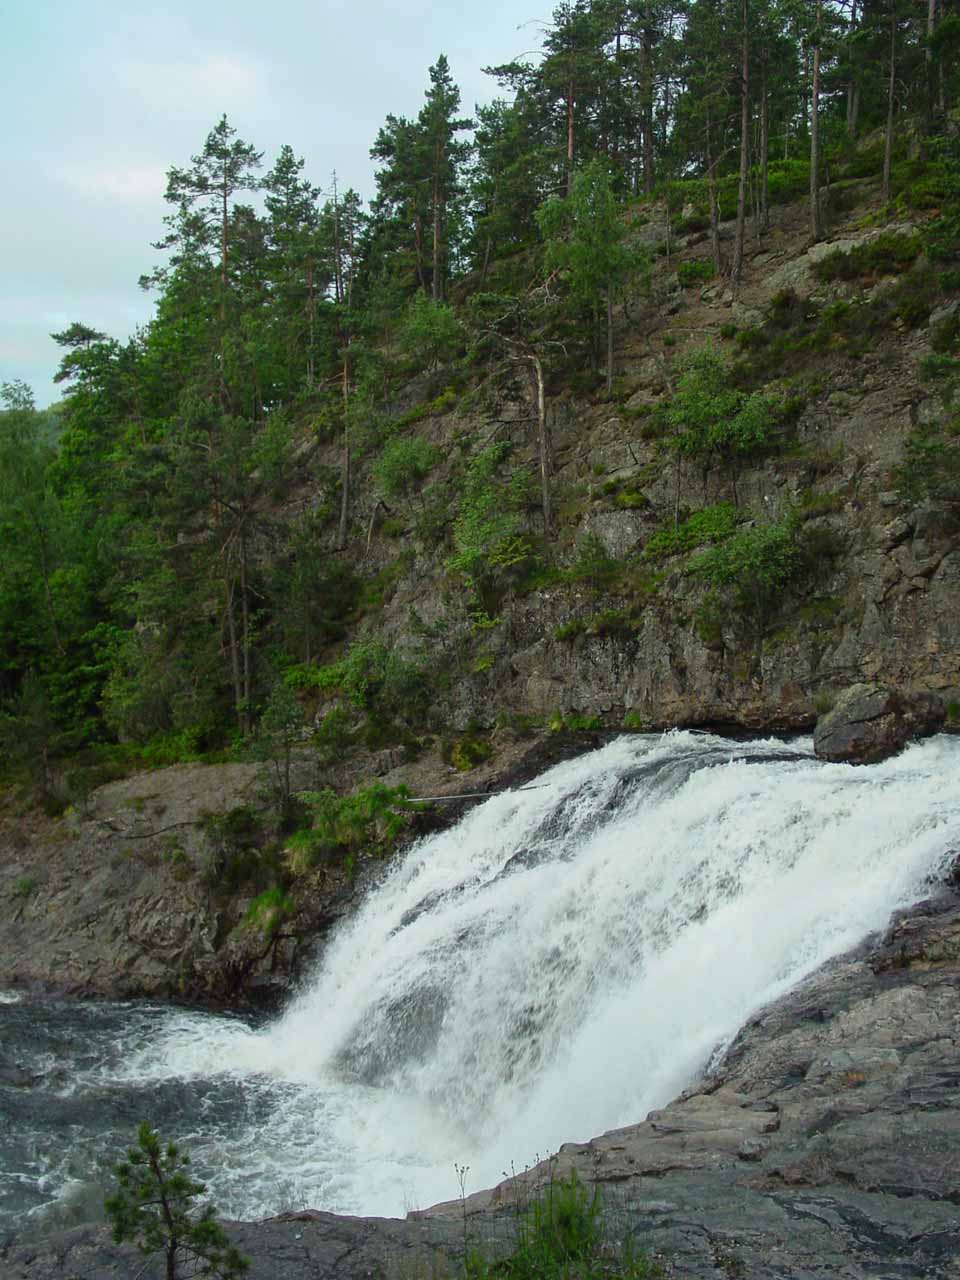 Another look at part of Flakkefossen